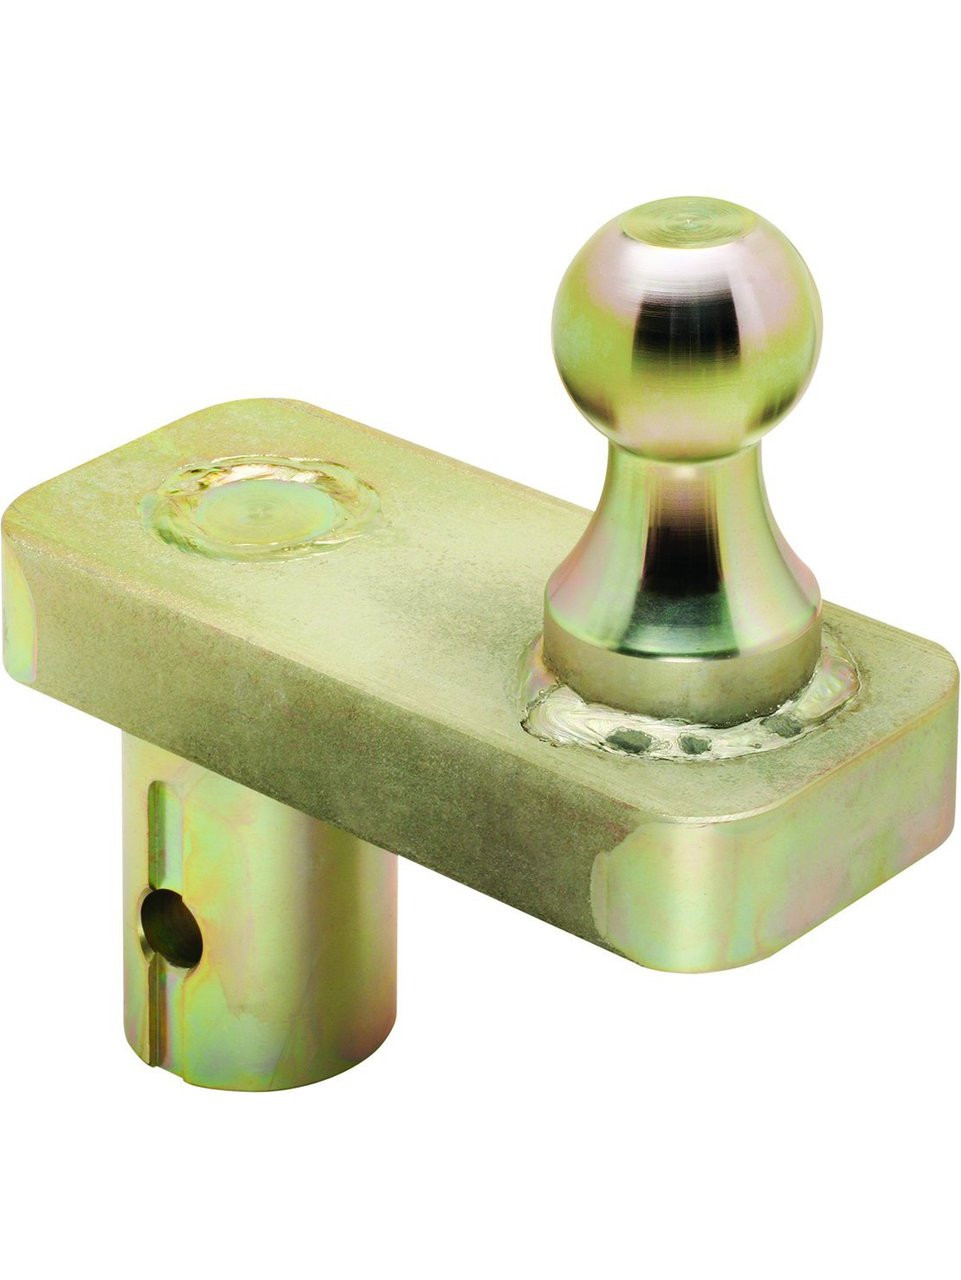 "19308 --- 2-5/16"" Replacement BULLDOG Gooseneck Hitch Ball with 5"" offset, 30,000 lb Capacity, Zinc Finish"